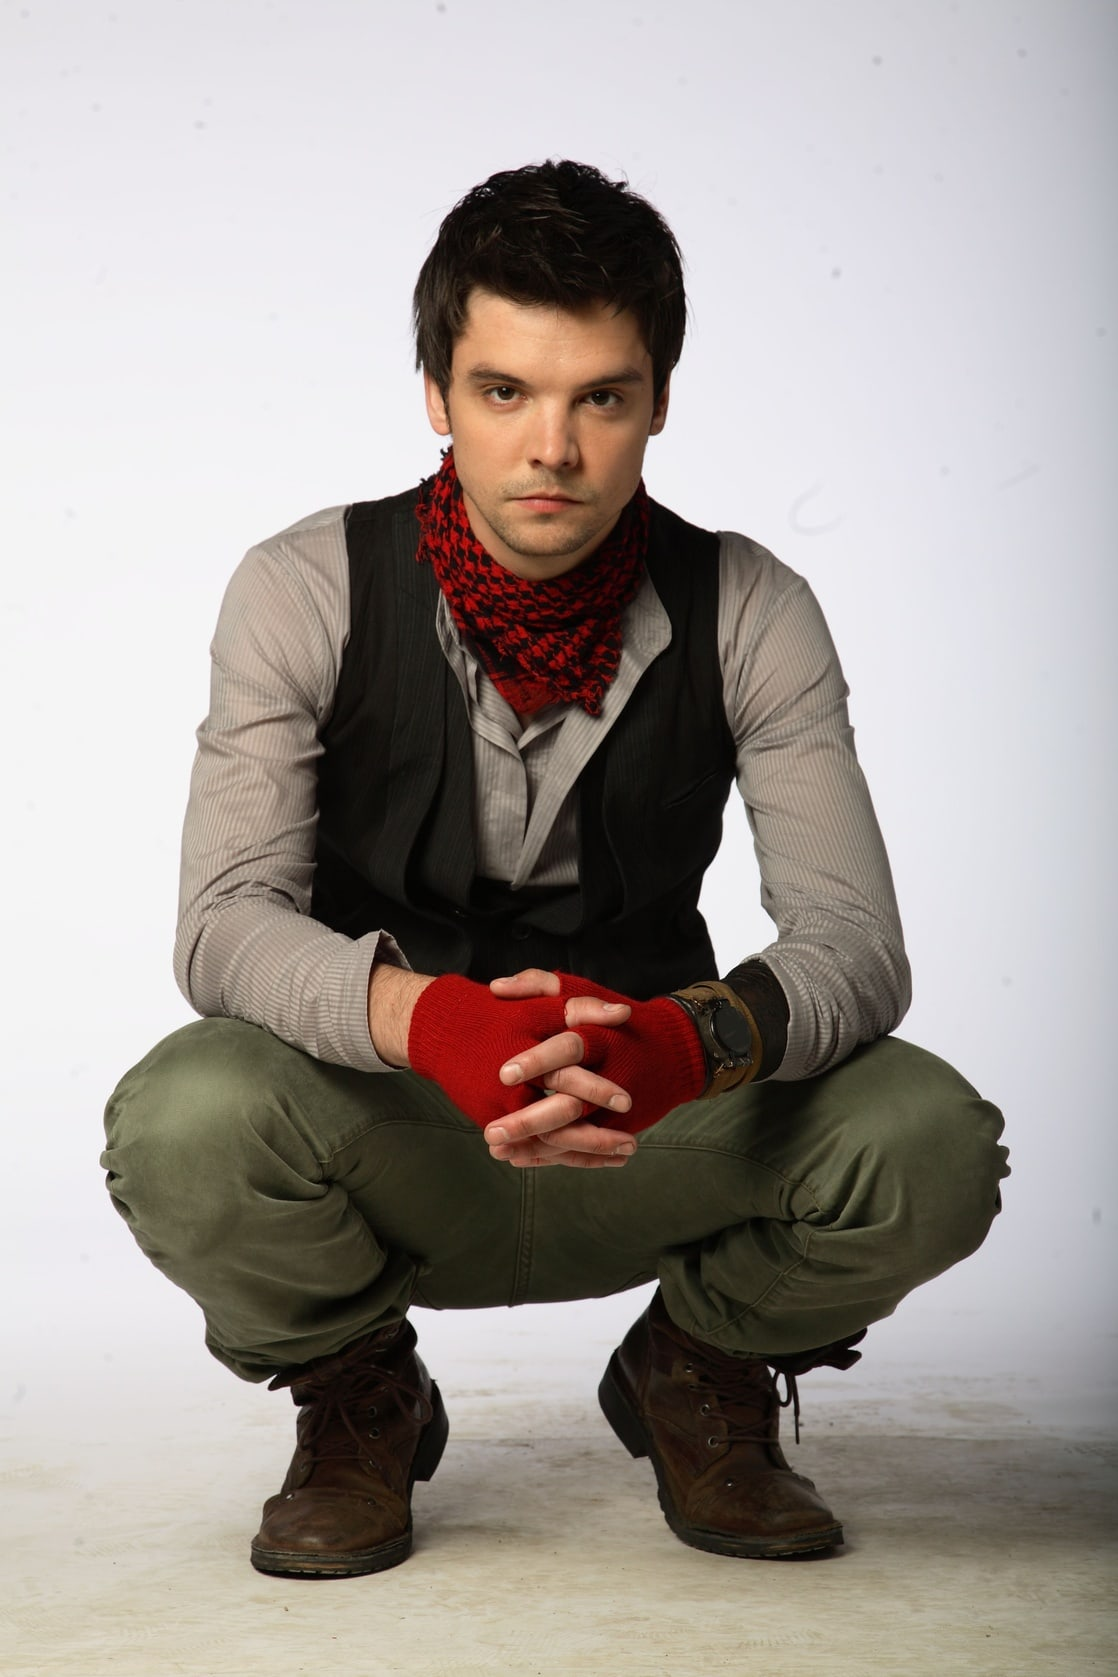 andrew lee potts and hannah spearritt marriedandrew lee potts and mariama goodman, andrew lee potts interview, andrew lee potts facebook, andrew lee potts imdb, andrew lee potts doctor who, andrew lee potts 2016, andrew lee potts, andrew lee potts and hannah spearritt, andrew lee potts twitter, andrew lee potts instagram, andrew lee potts wife, andrew lee potts alice, andrew lee potts 2015, andrew lee potts and hannah spearritt married, andrew lee potts wireless, andrew lee potts tumblr, andrew lee potts biography, andrew lee potts midsomer murders, andrew lee potts height, andrew lee potts gif